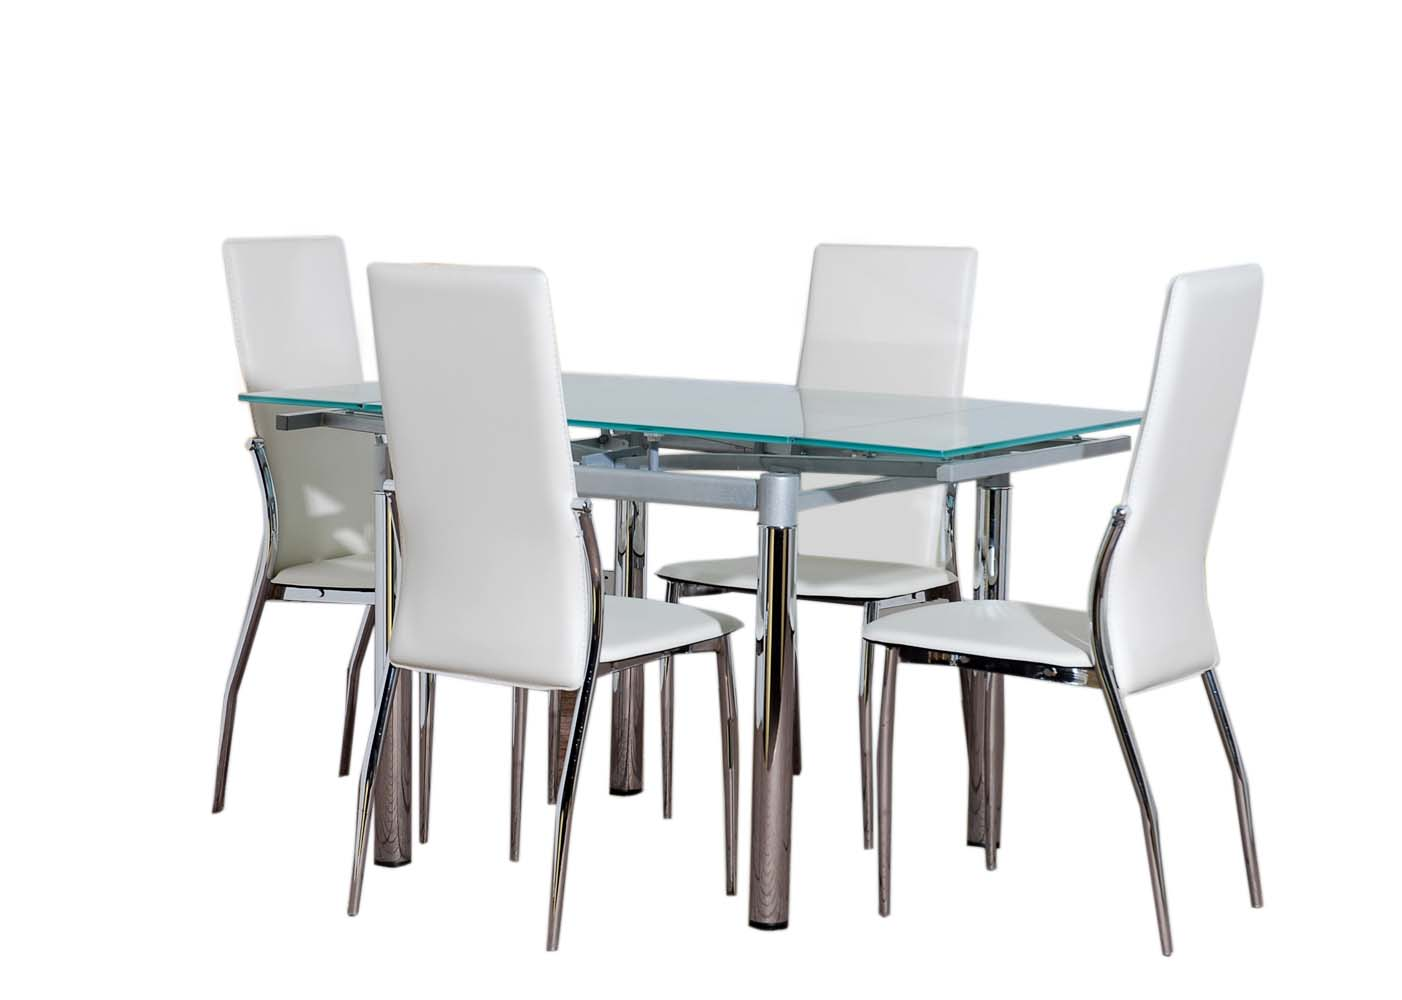 Details About Glass Dining Table FURNITURE And 4 Cream CHAIRS Set